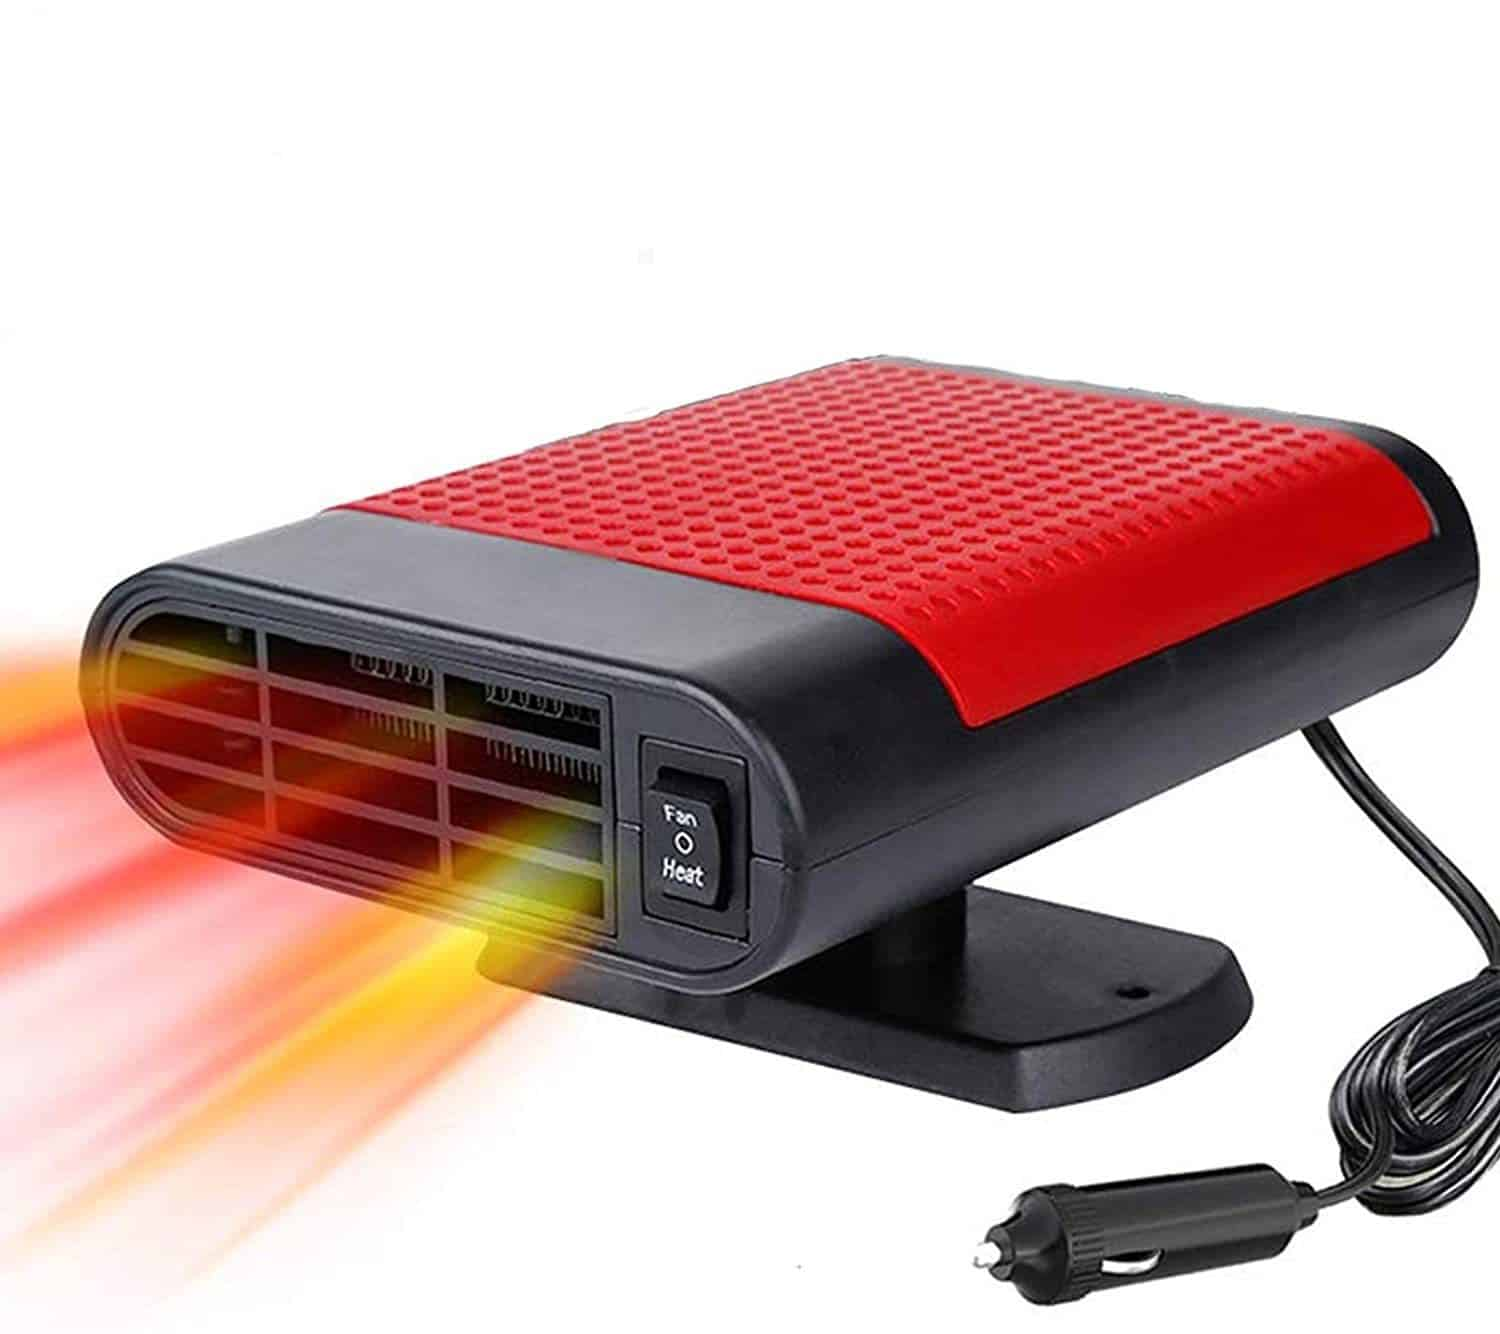 CICL Fast Heating 12V Portable Car Heater